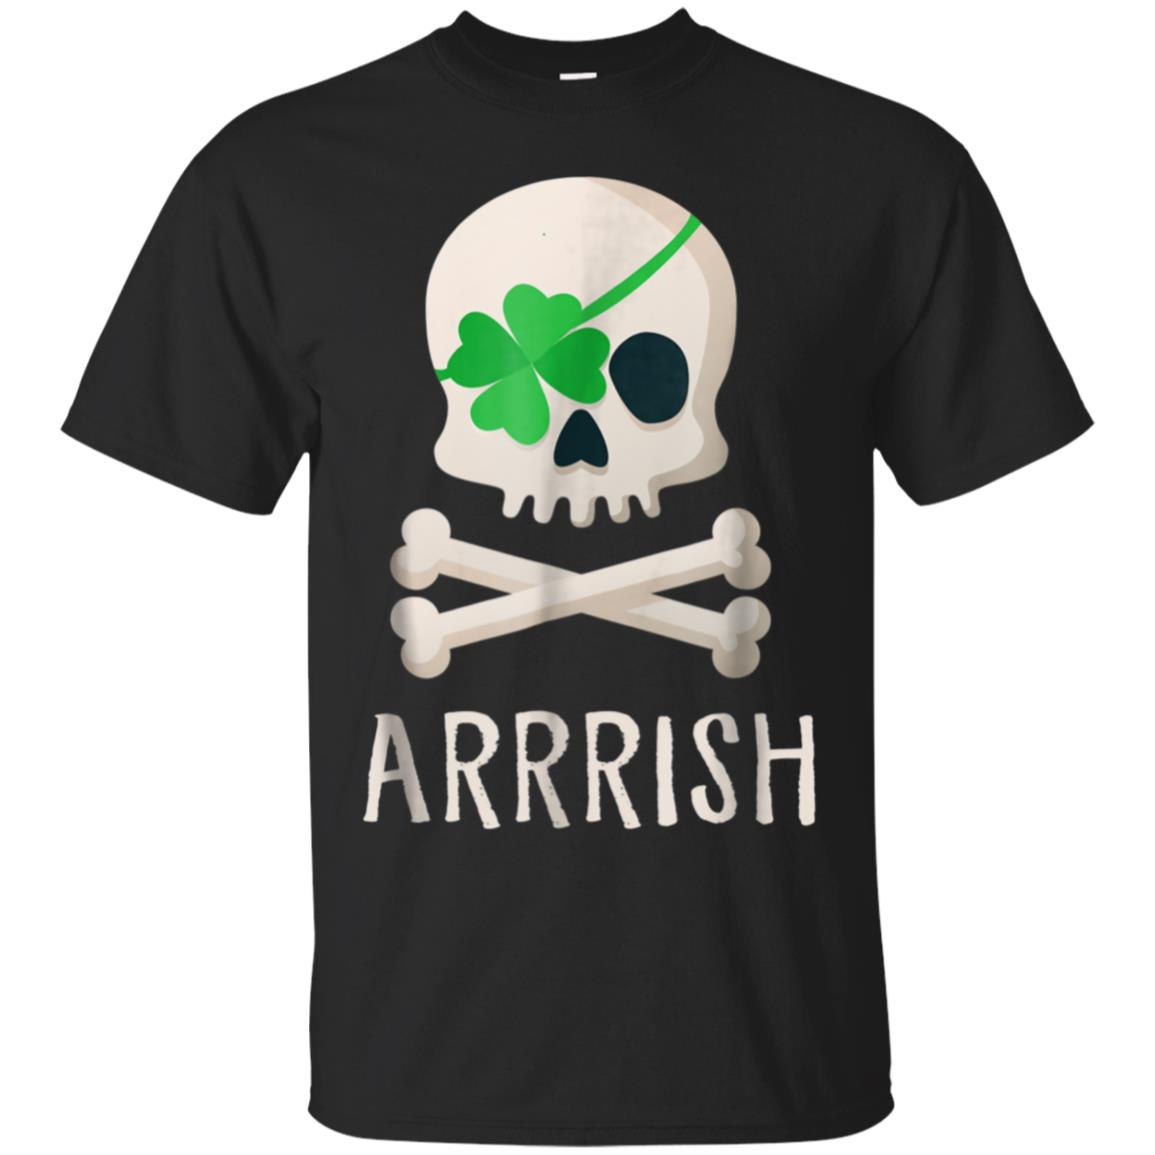 ARRRISH Irish Pirate Shirt  Funny St. Patty's Day T-Shirt 99promocode